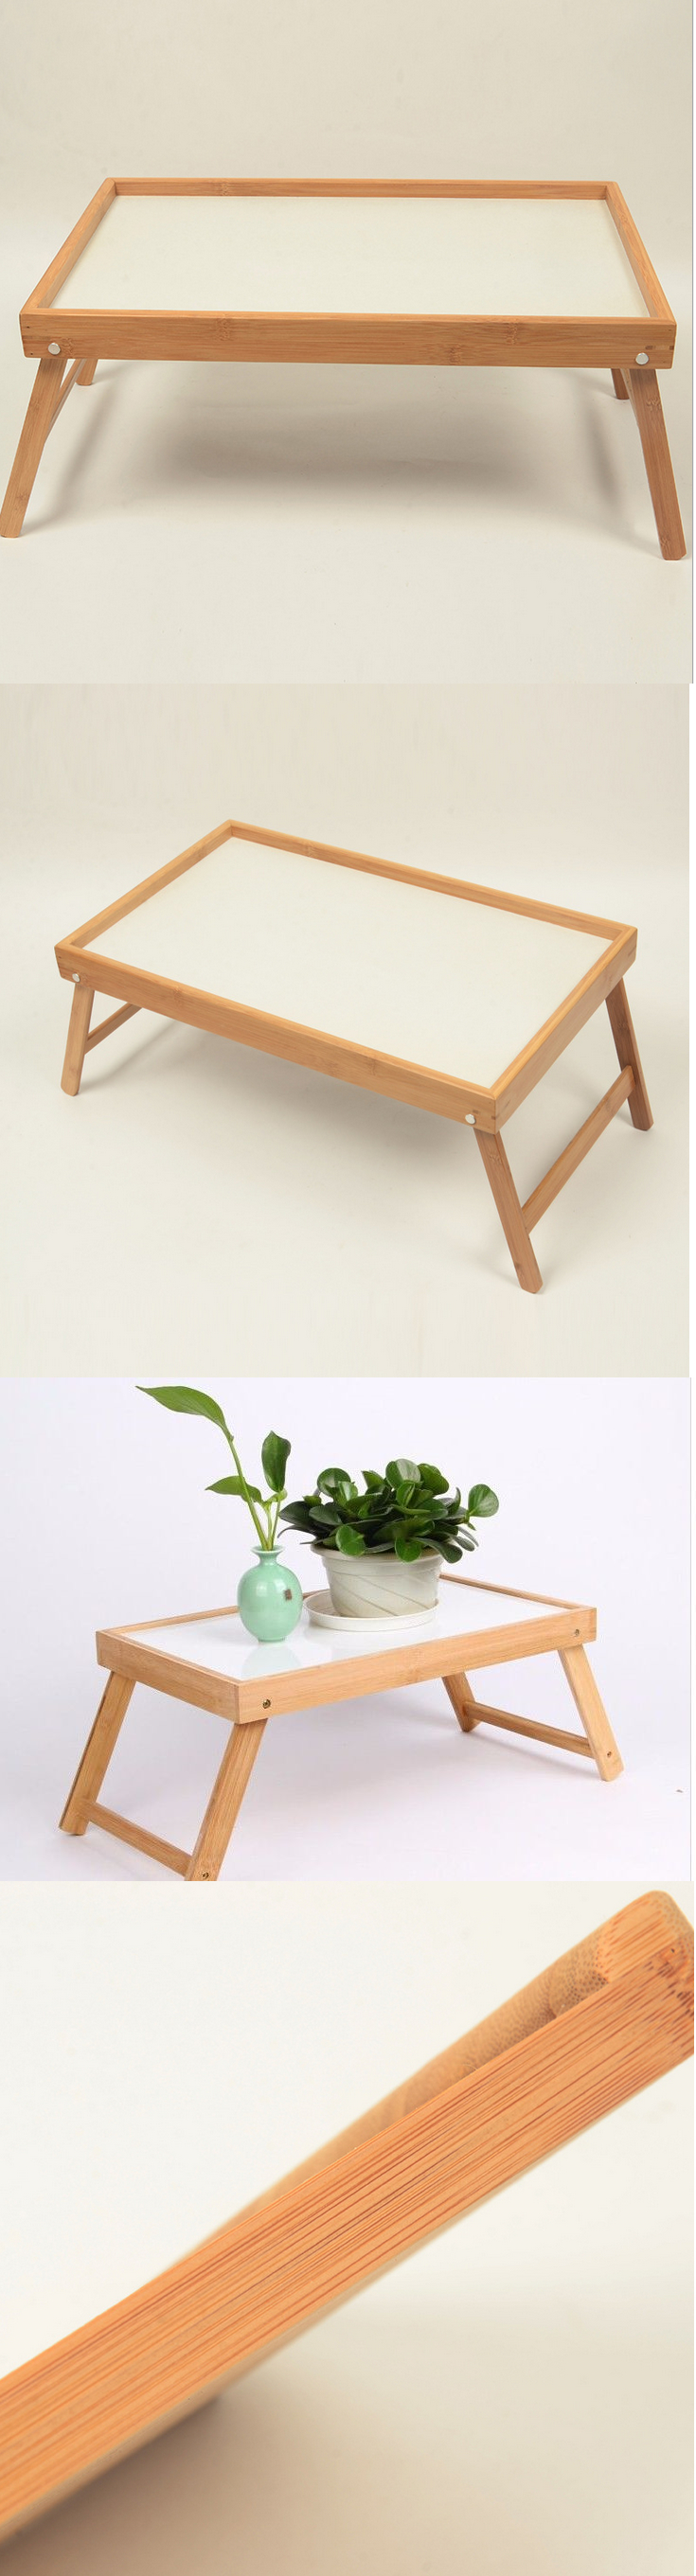 Bed and Chair Tables Bamboo Folding Table Tray Use In Bed Food